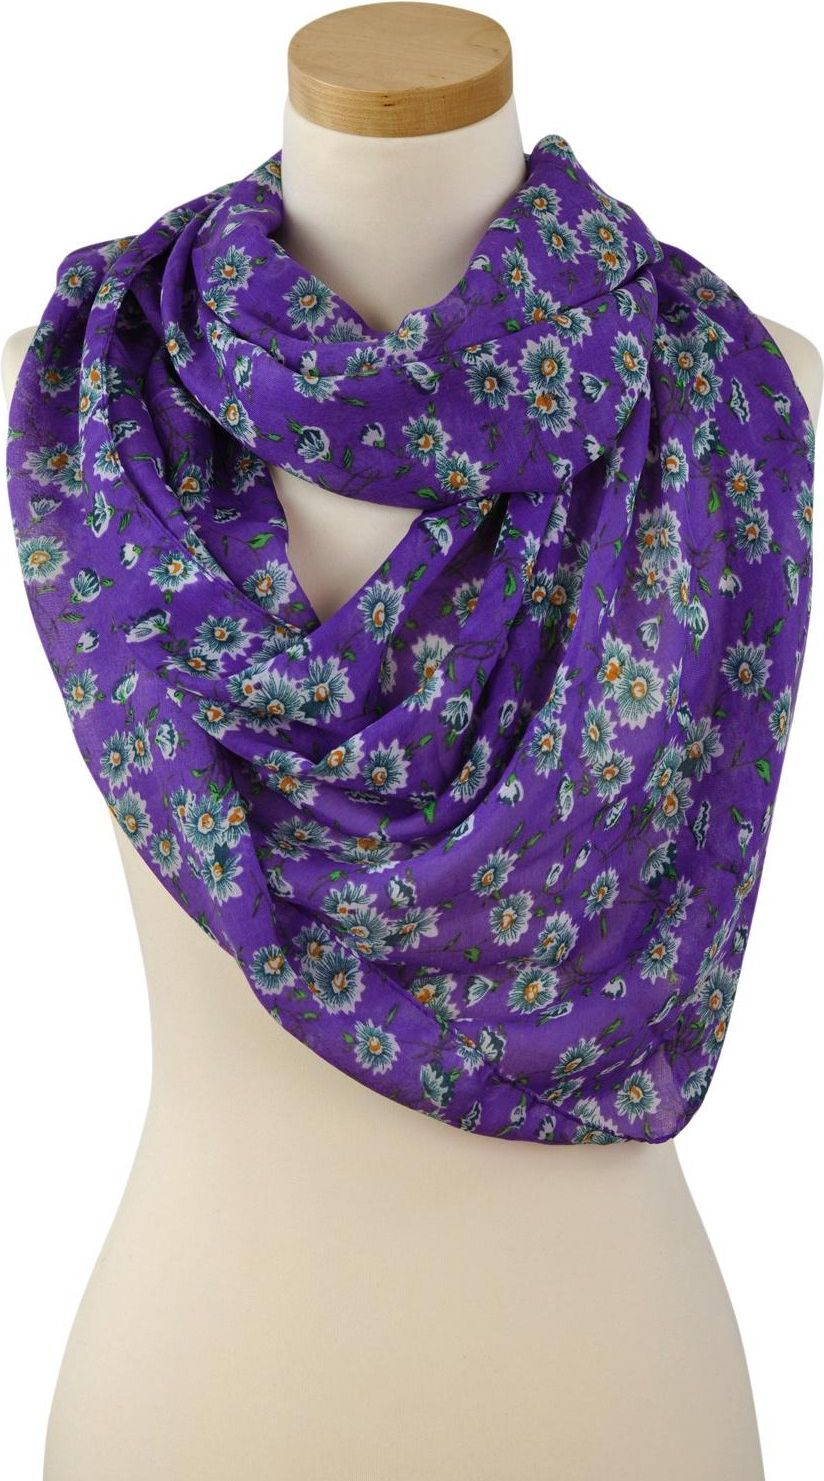 Art of Polo Women's shawl with a purple floral motif sz1240-4